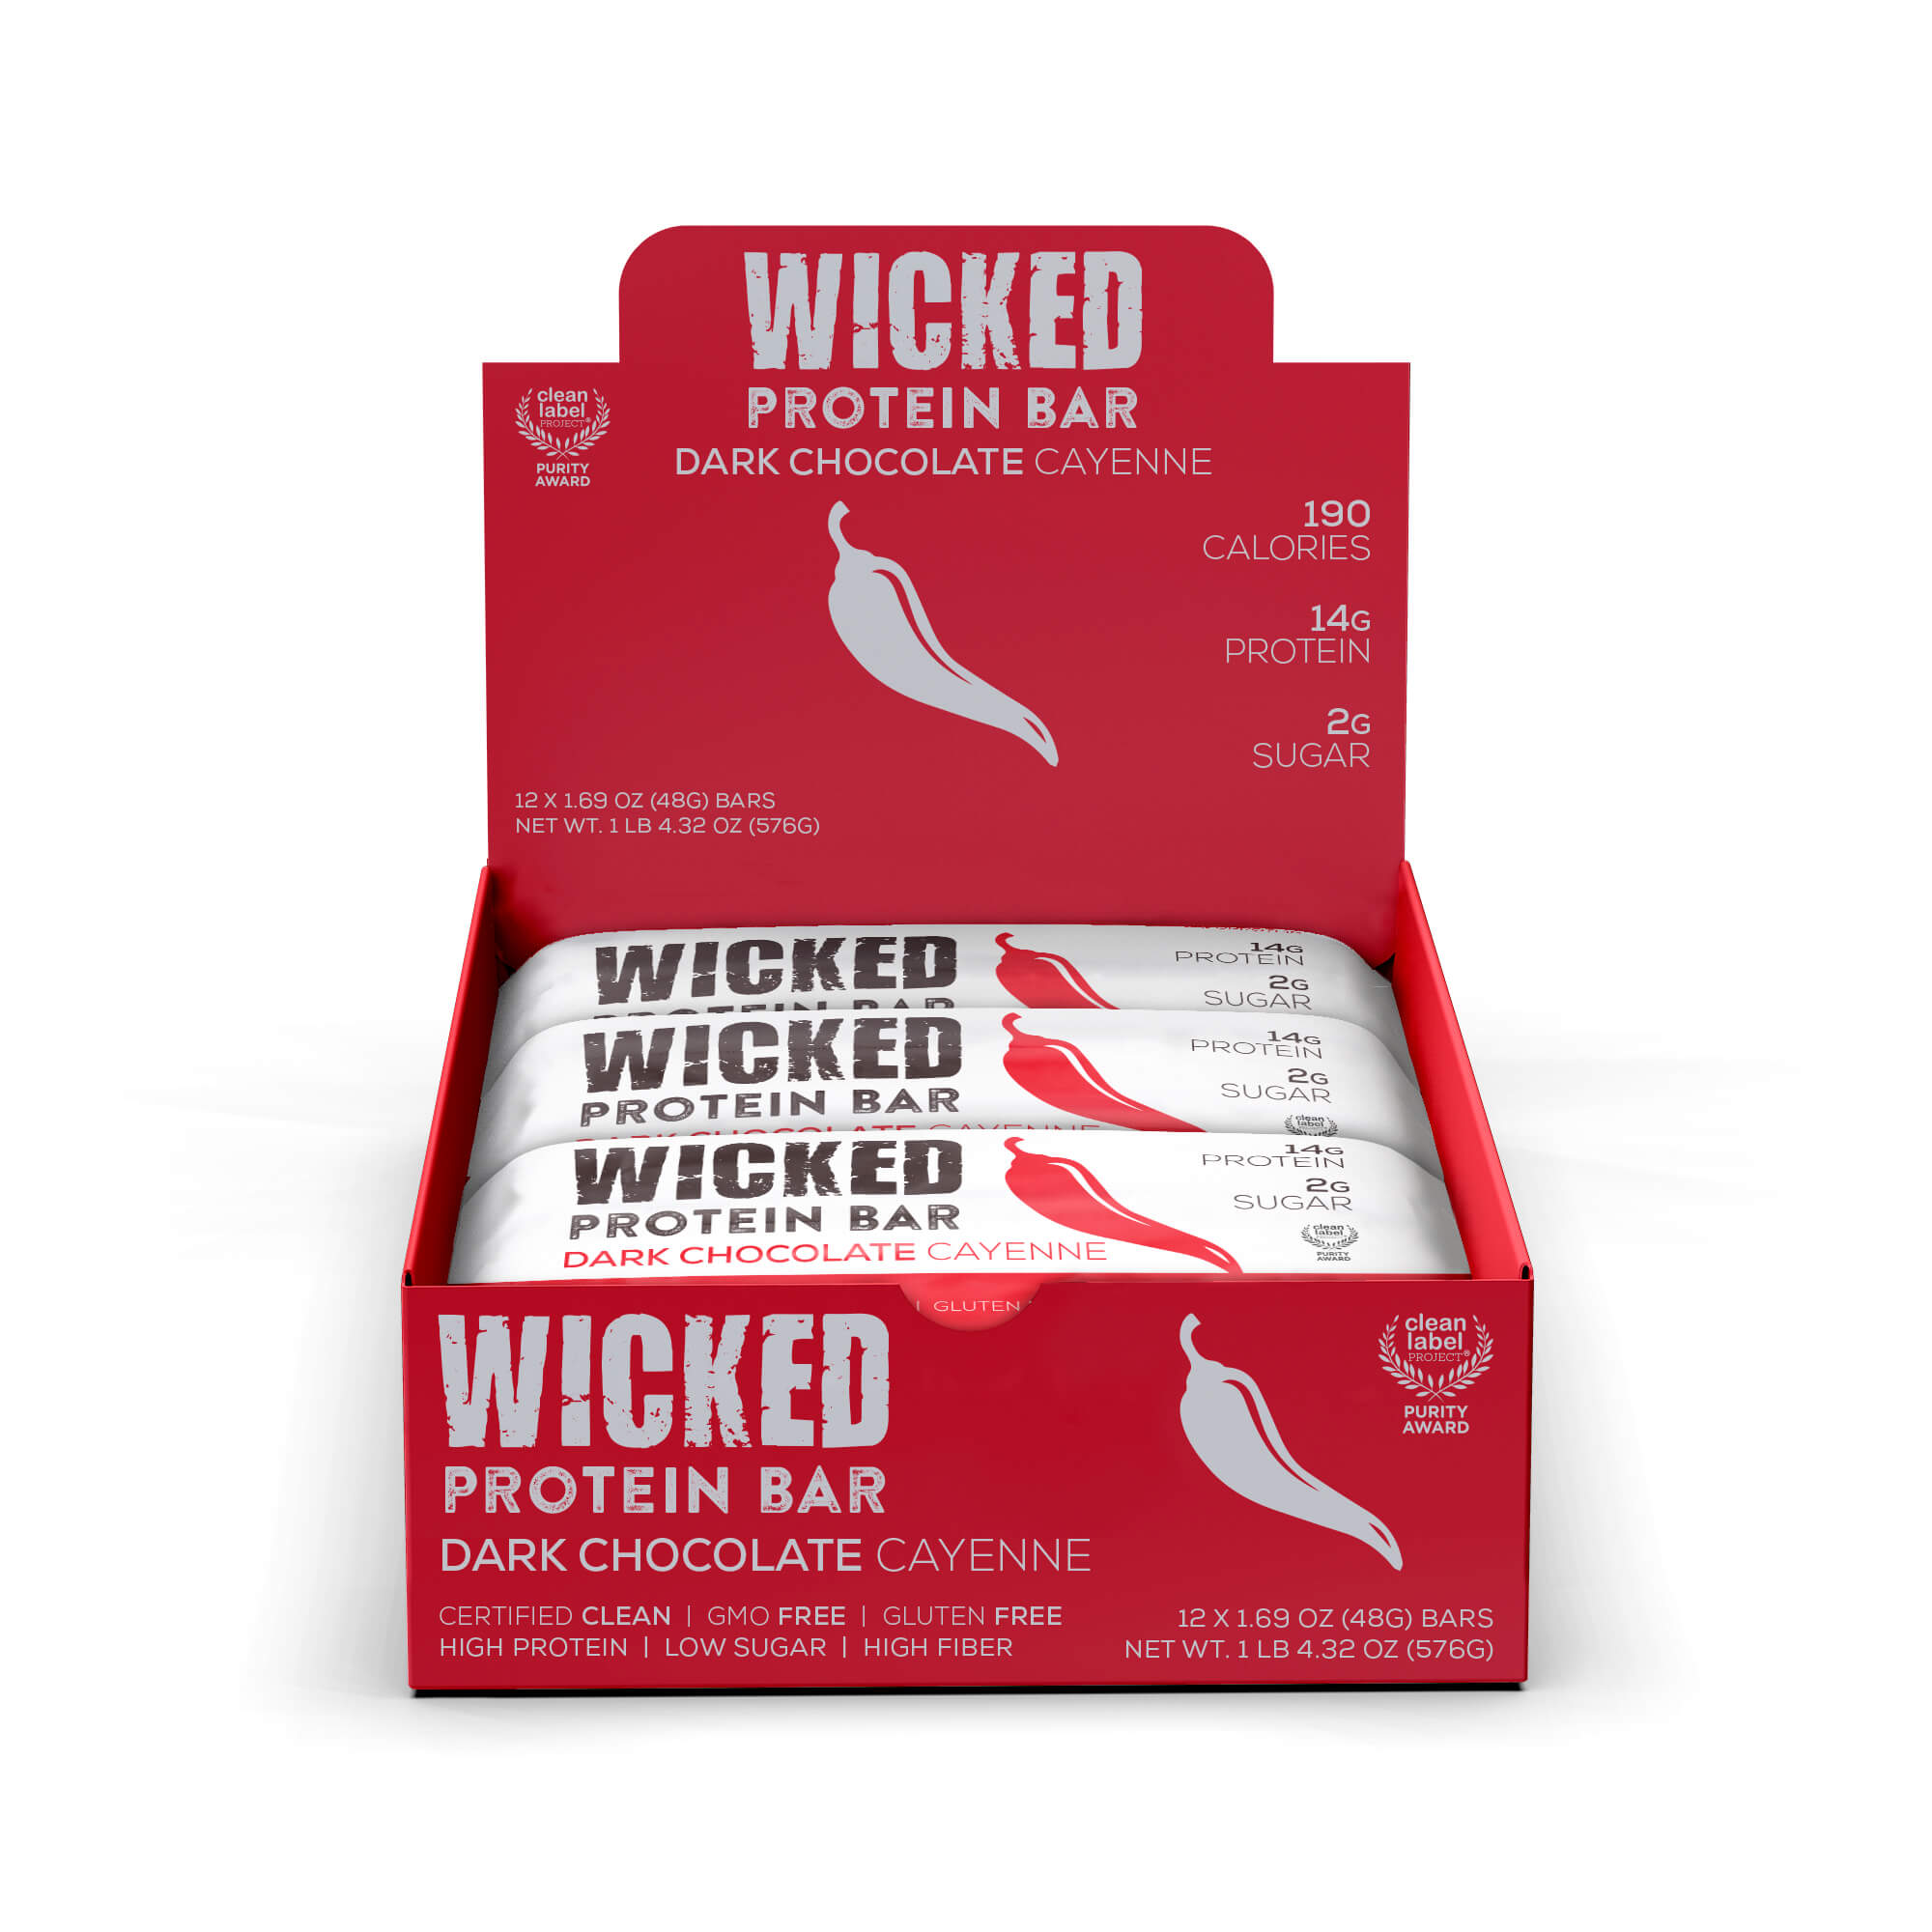 WICKED Dark Chocolate Cayenne Protein Bars (12 Bars/Box) - WICKED Protein Bars